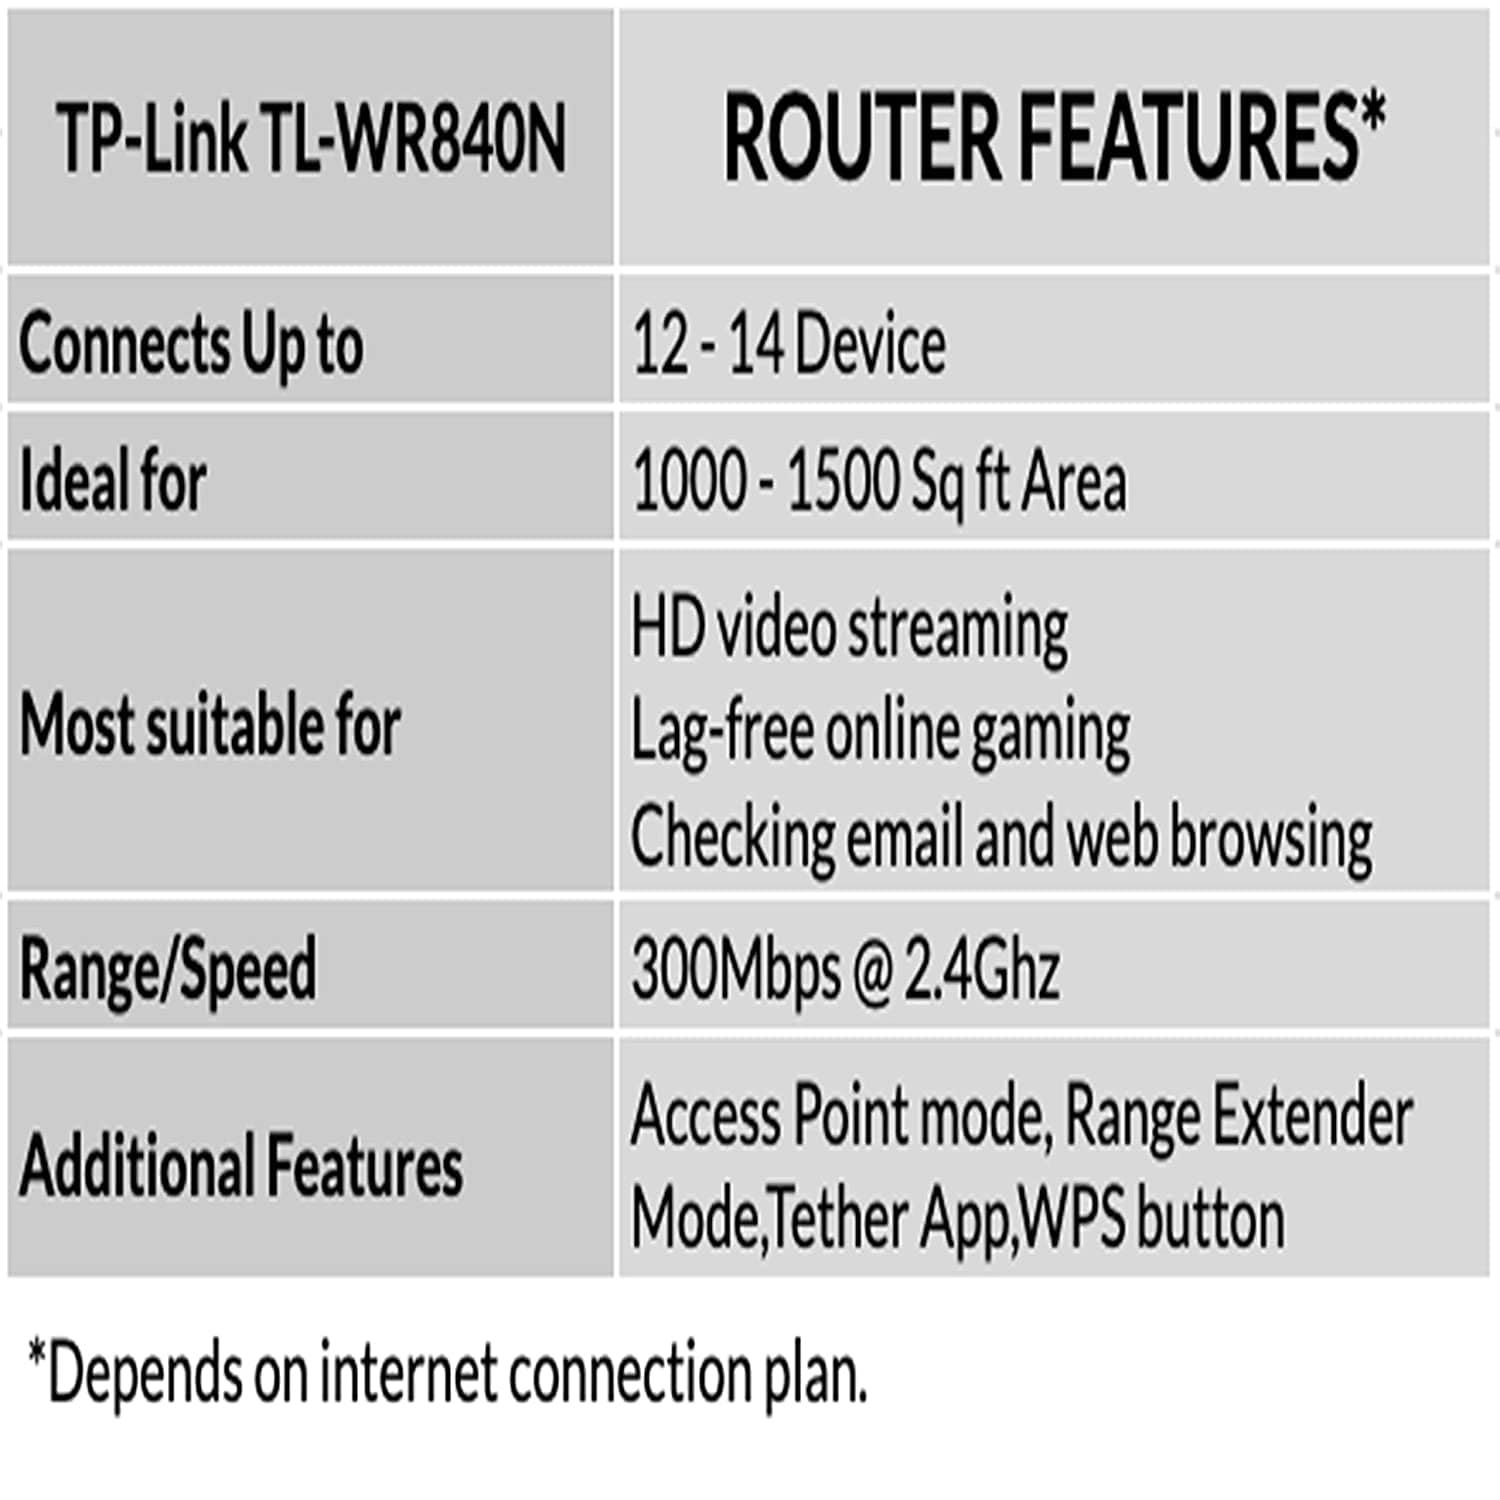 TP-LINK TL-WR840N 300Mbps Wireless N Router (Not A Modem)